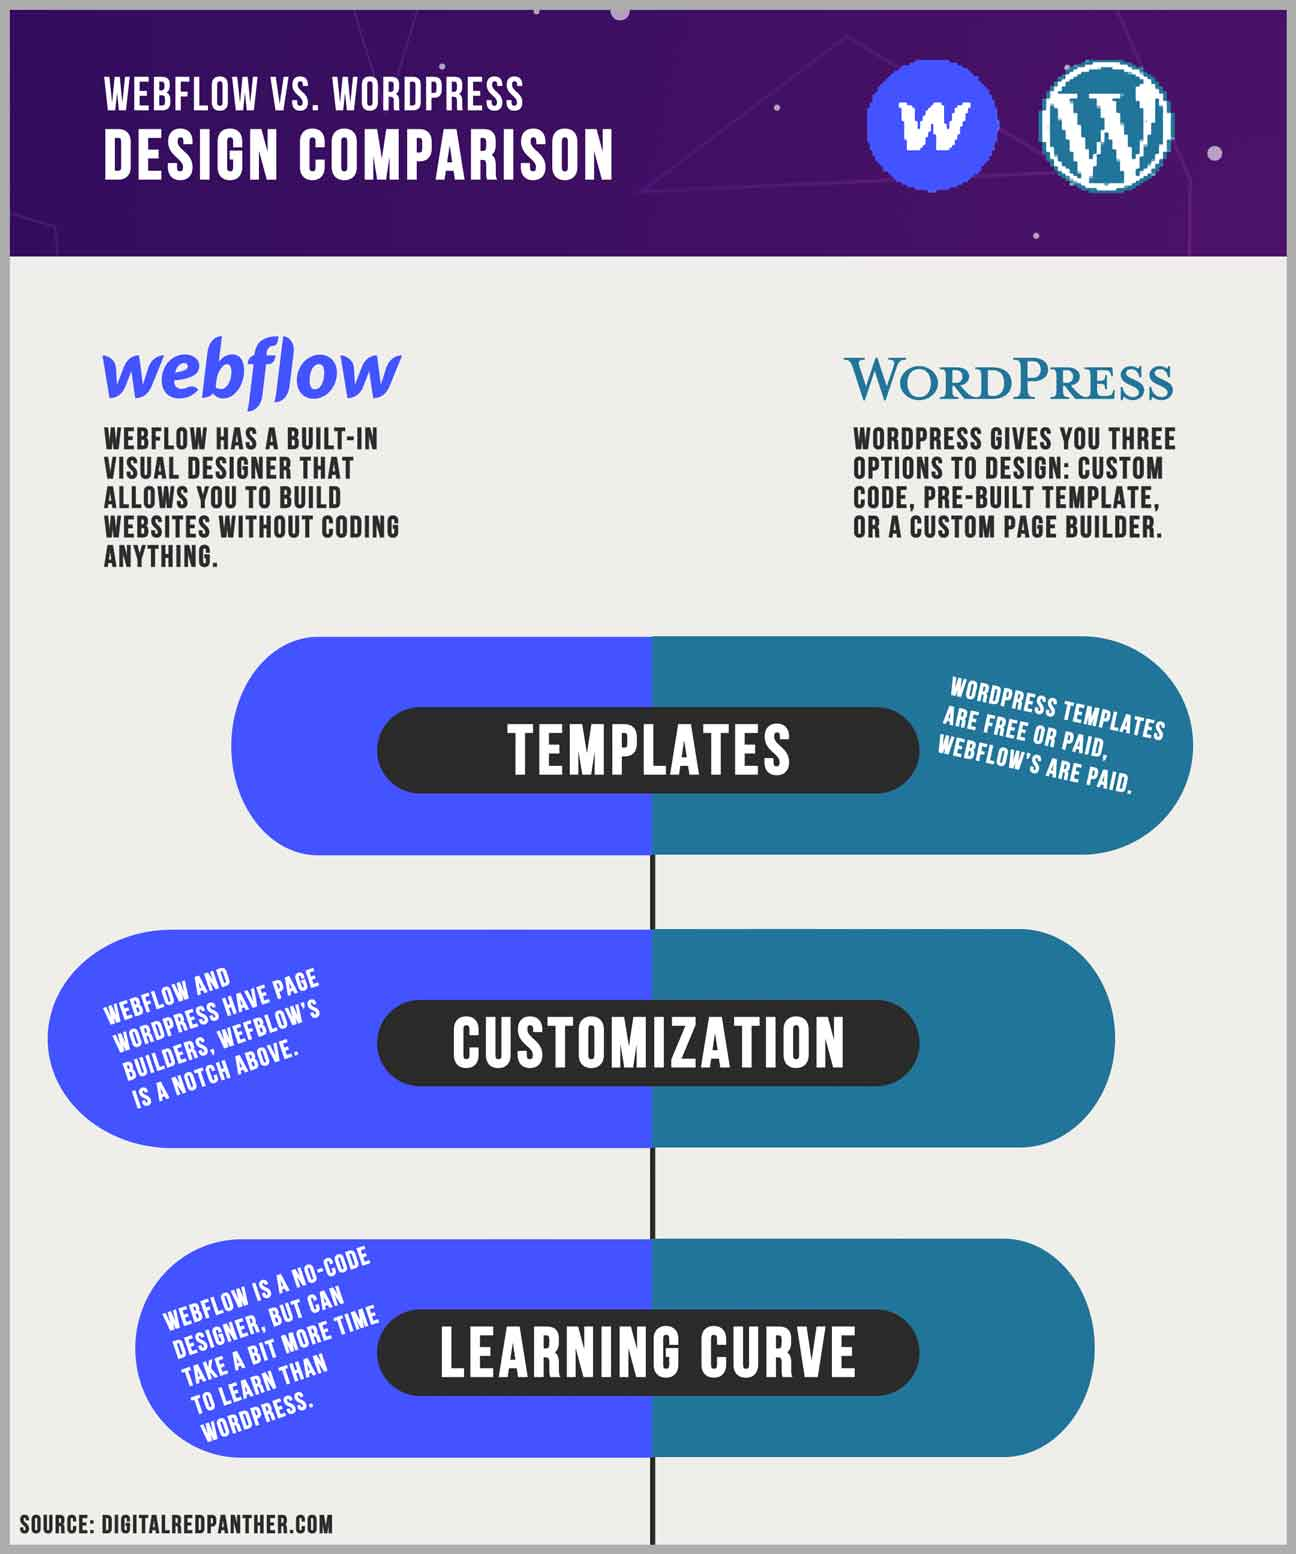 webflow vs wordpress design comparison chart